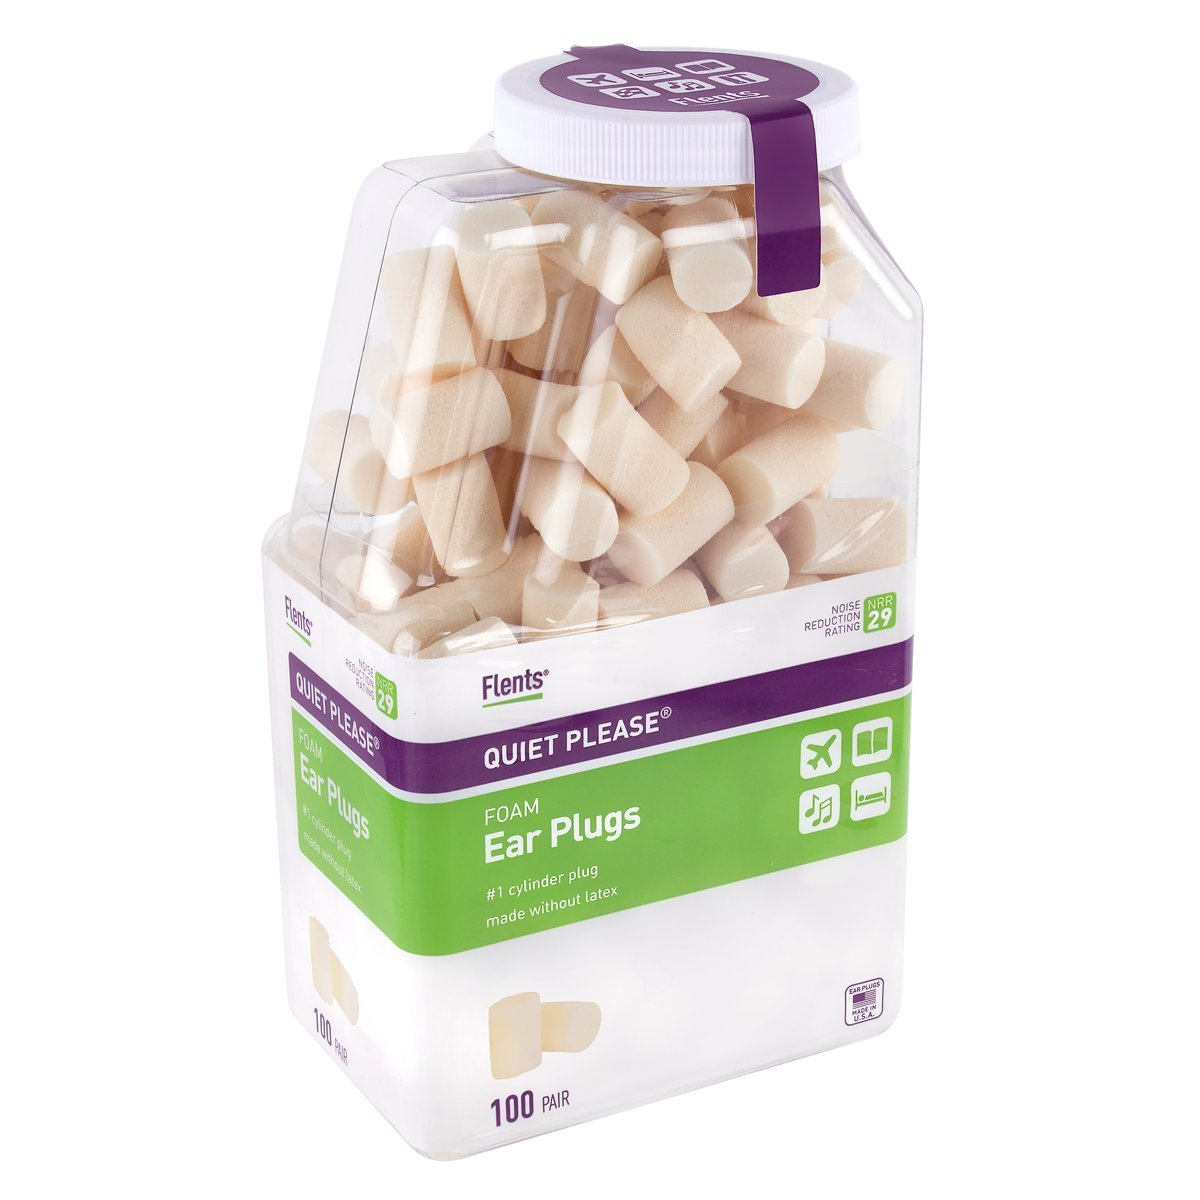 Flents Quiet Please Earplugs (100 Pair)